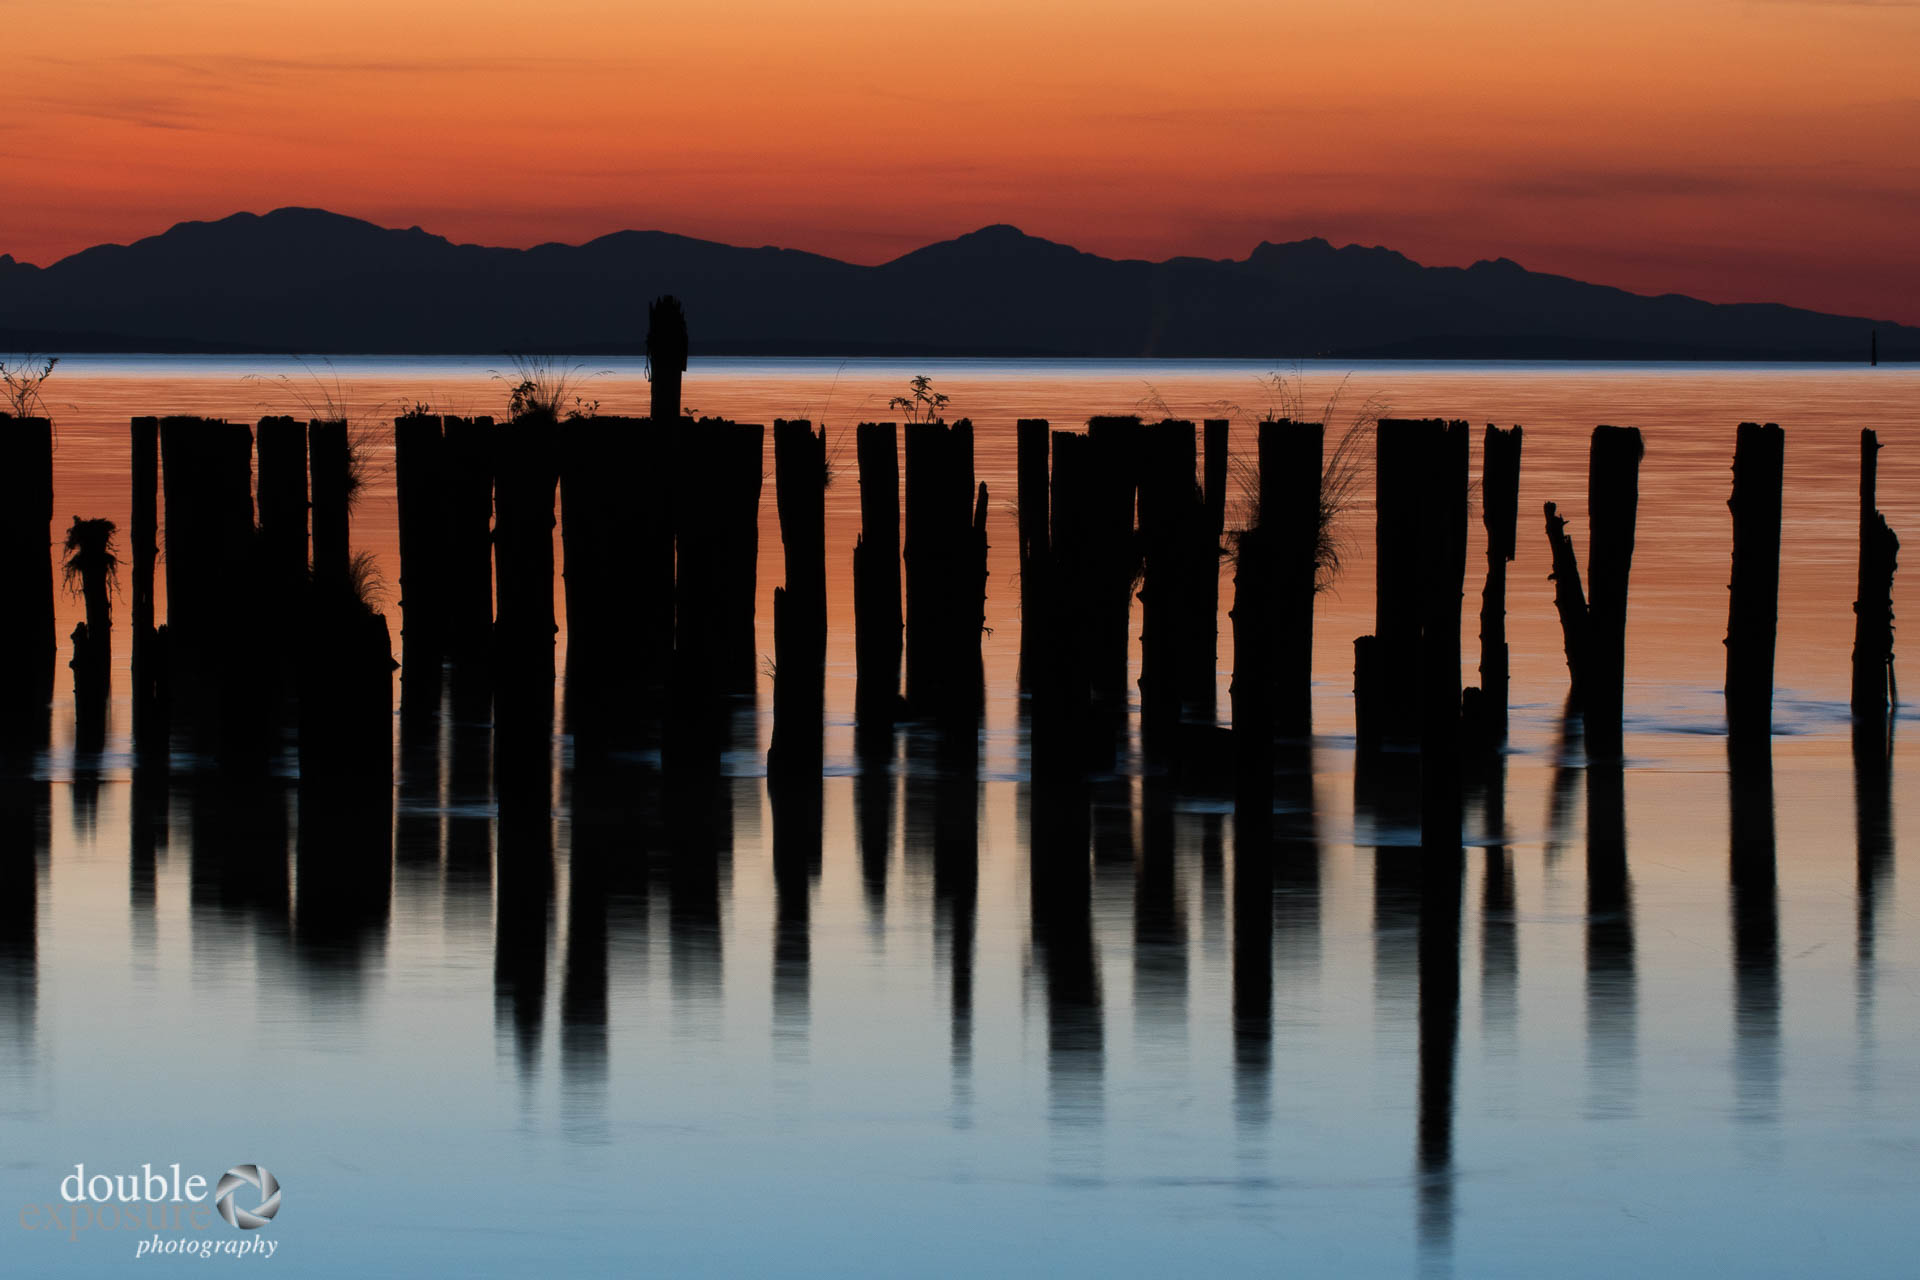 Old pilings in river with sunset